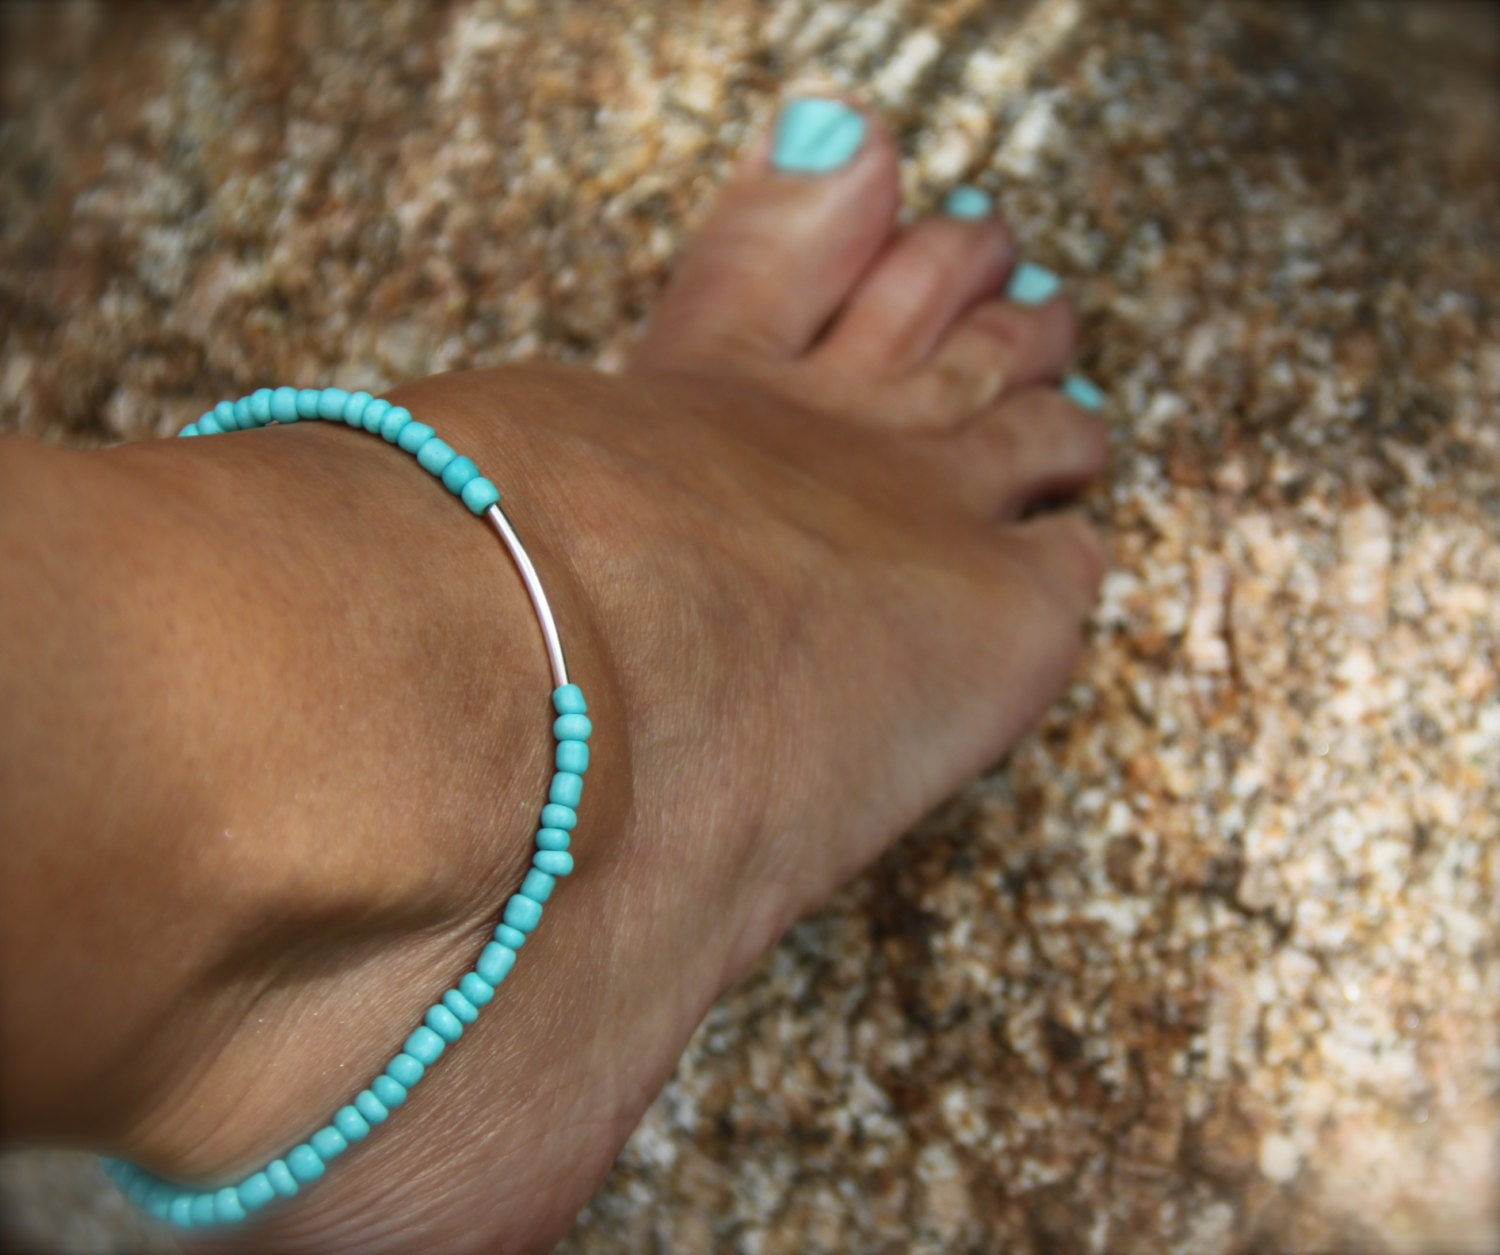 share the addition something to blue my anklet pin excited etsy shop turquoise latest bracelets adjustable bracelet